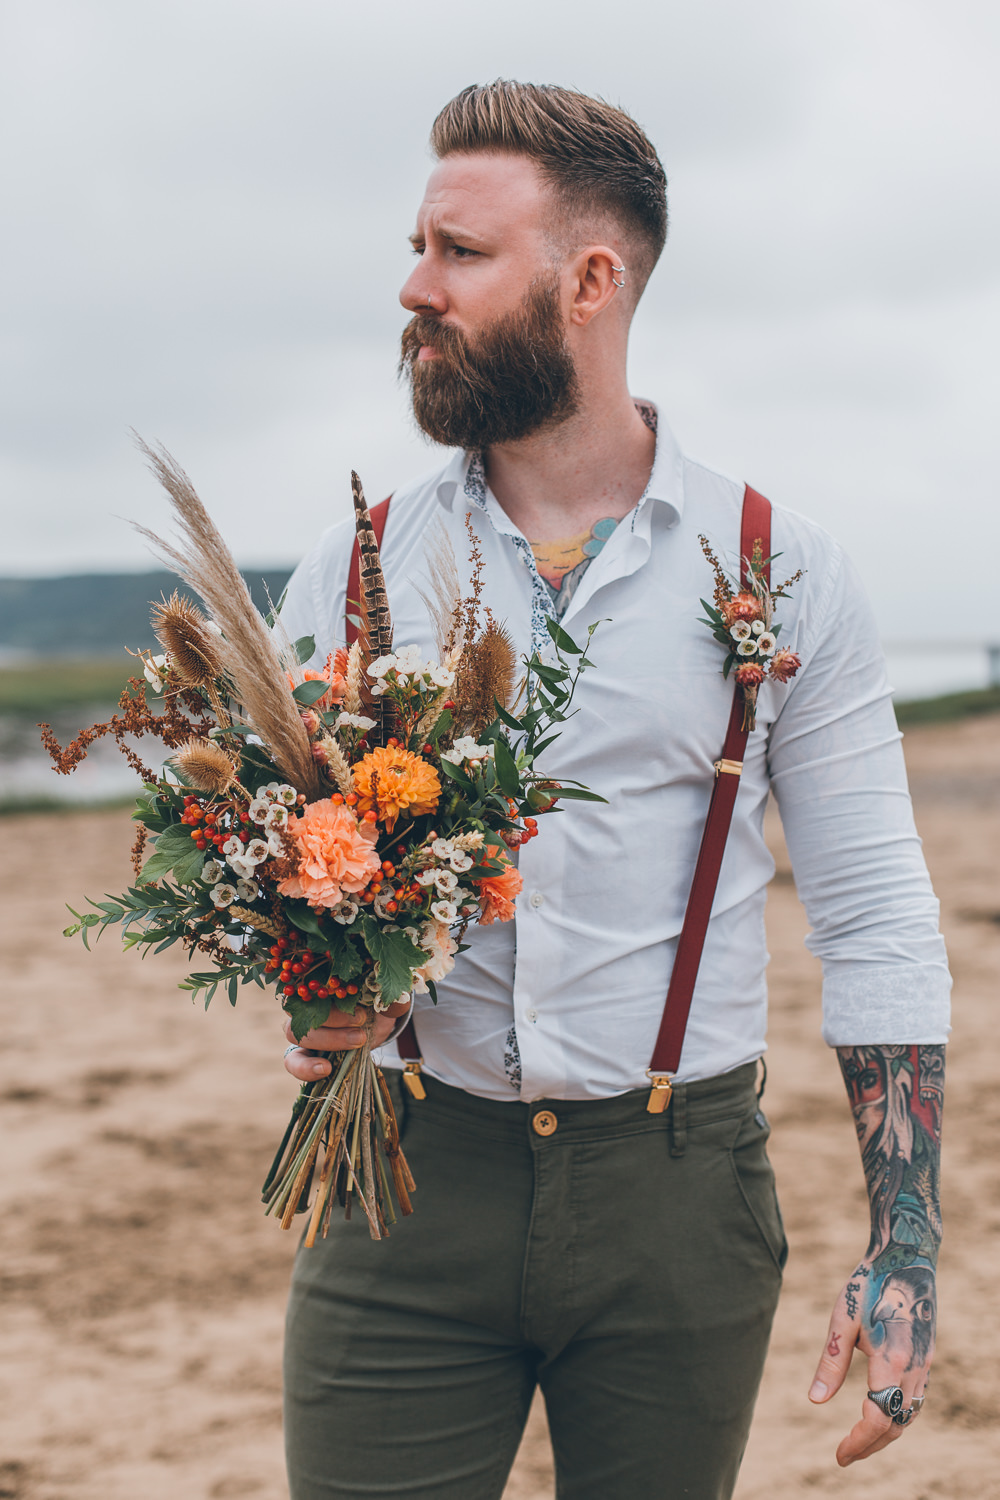 Bride Bridal Bouquet Flowers Orange Red Pampas Grass Beach Wedding UK Maria Madison Photographer